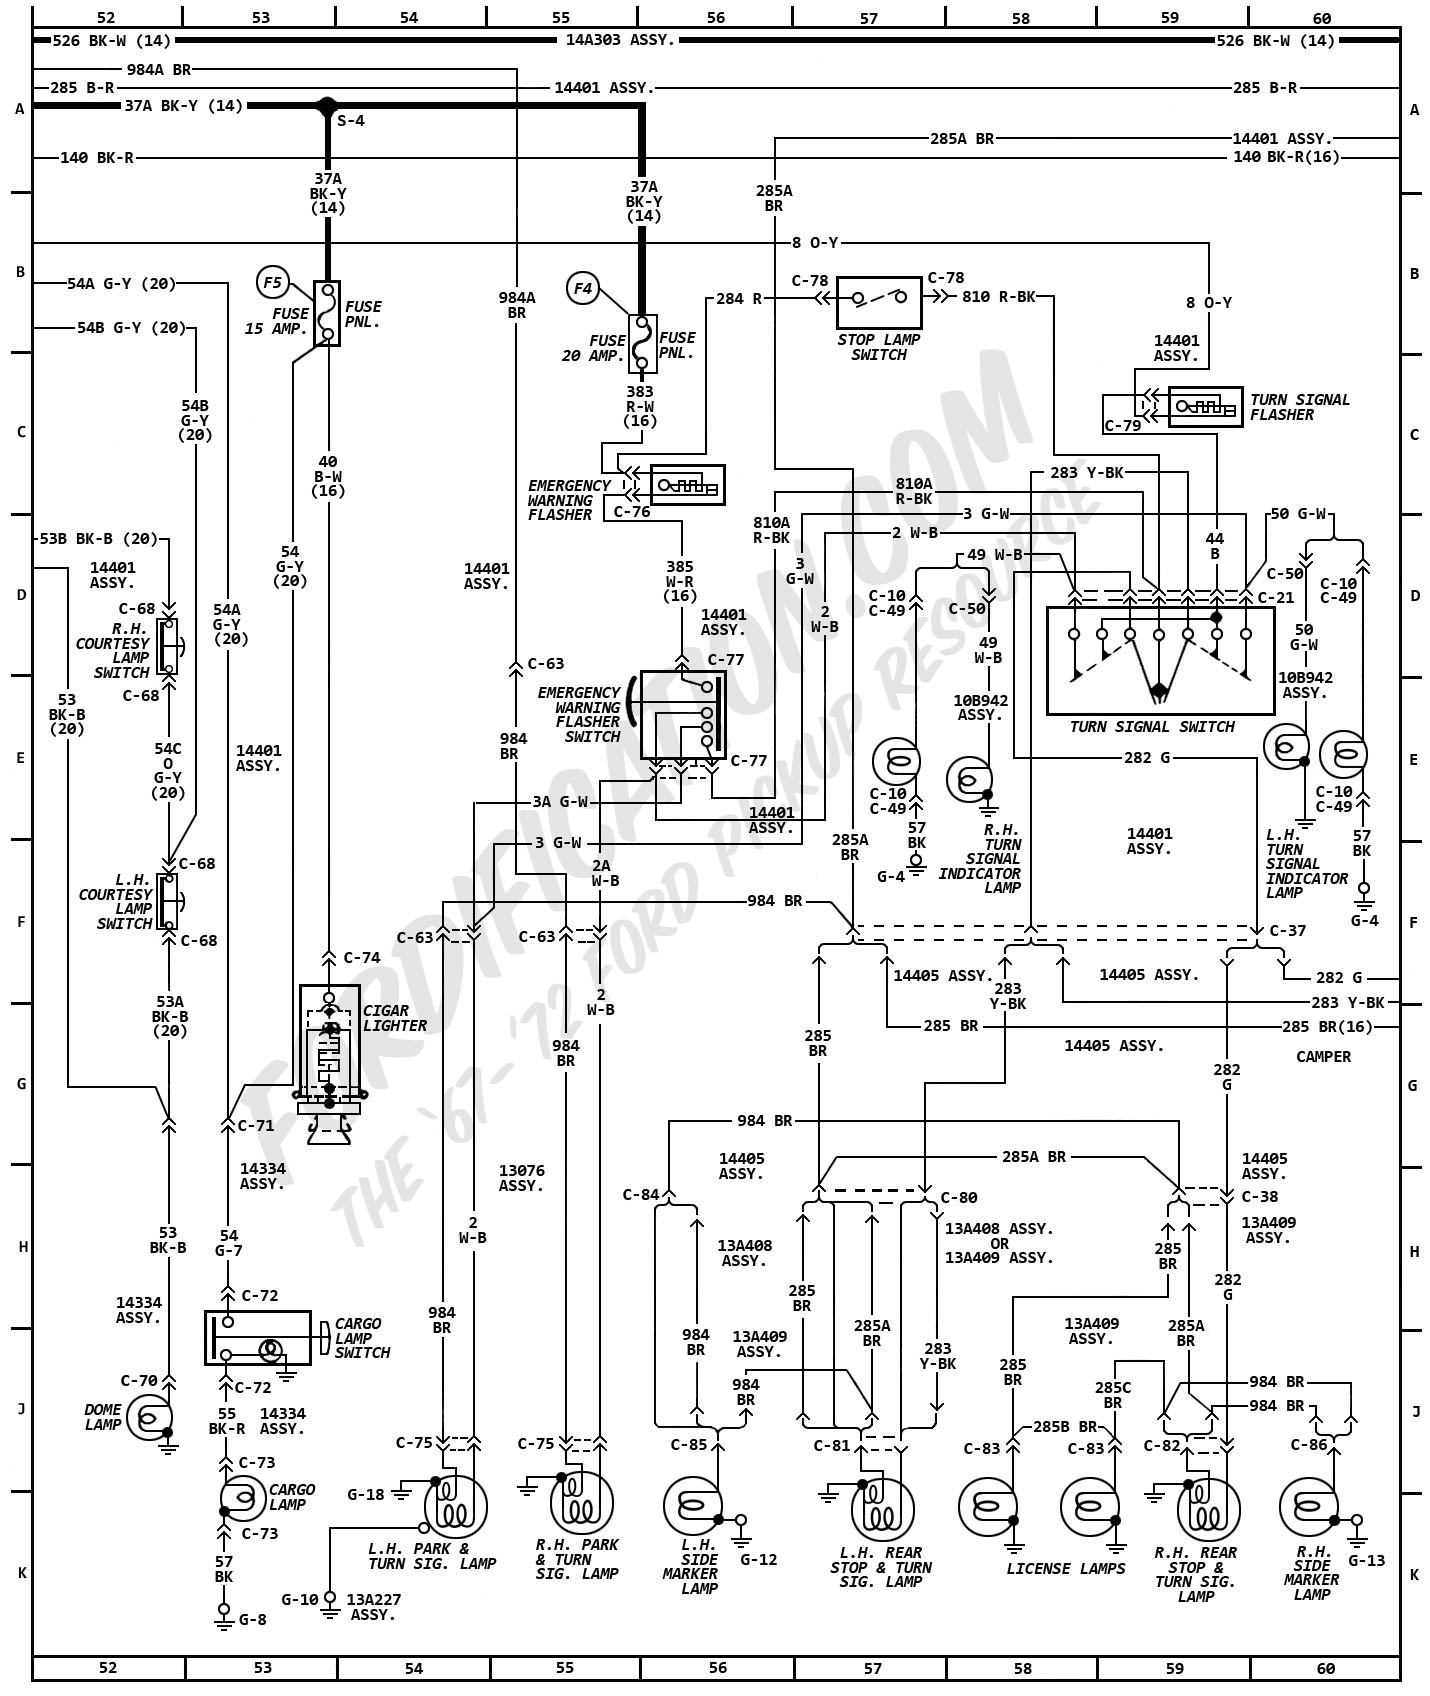 1971 Ford F100 Ignition Switch Wiring Diagram - Great Installation  Mercury Wiring Diagram on 1950 mercury speaker, 1950 mercury wheels, 1950 mercury wiring harness, 1950 ford headlight switch diagram, 1950 mercury horn, 1950 mercury schematic, 1950 mercury carburetor, 1950 mercury frame, 1950 mercury rear suspension, 1950 mercury engine, 1950 mercury air conditioning, 1950 mercury brakes, ford steering box diagram, 1950 ford light switch diagram, 1950 mercury chassis, 1950 mercury speedometer, 1950 mercury body, 1950 mercury door, ford flathead distributor diagram, ignition switch diagram,